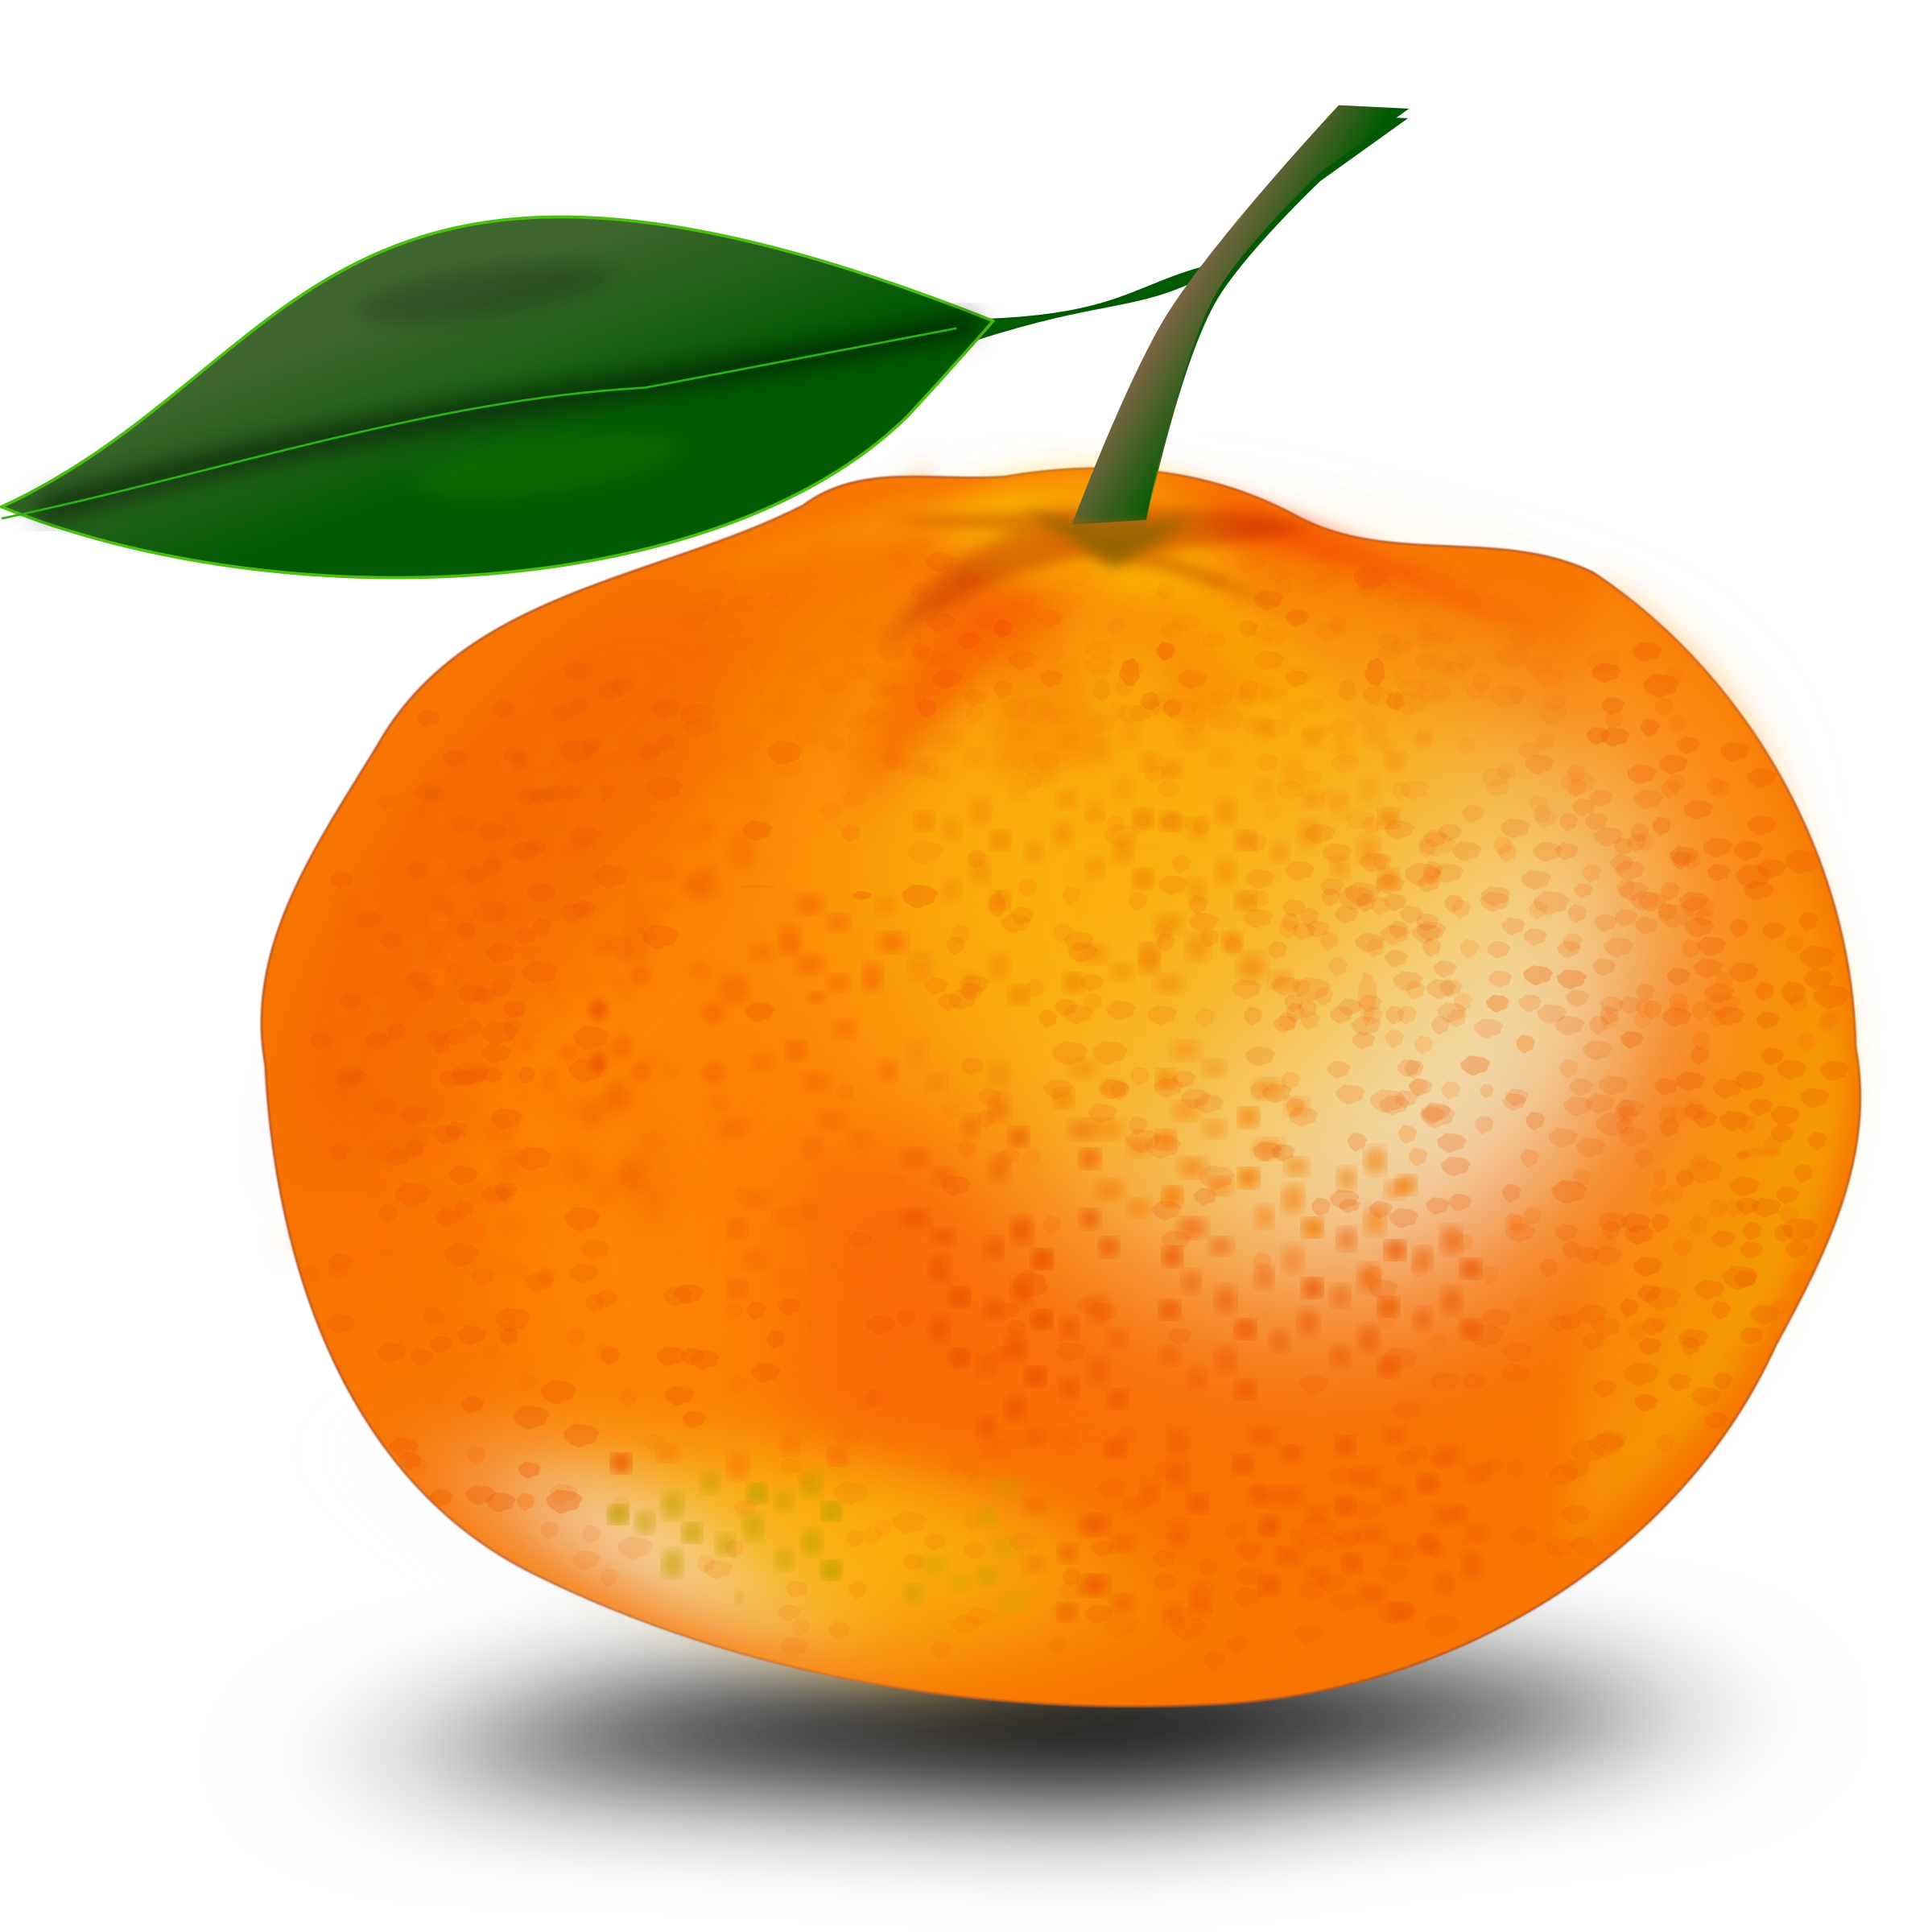 Orange (Fruit) clipart cartoon BIG orange IMAGE (PNG) Clipart